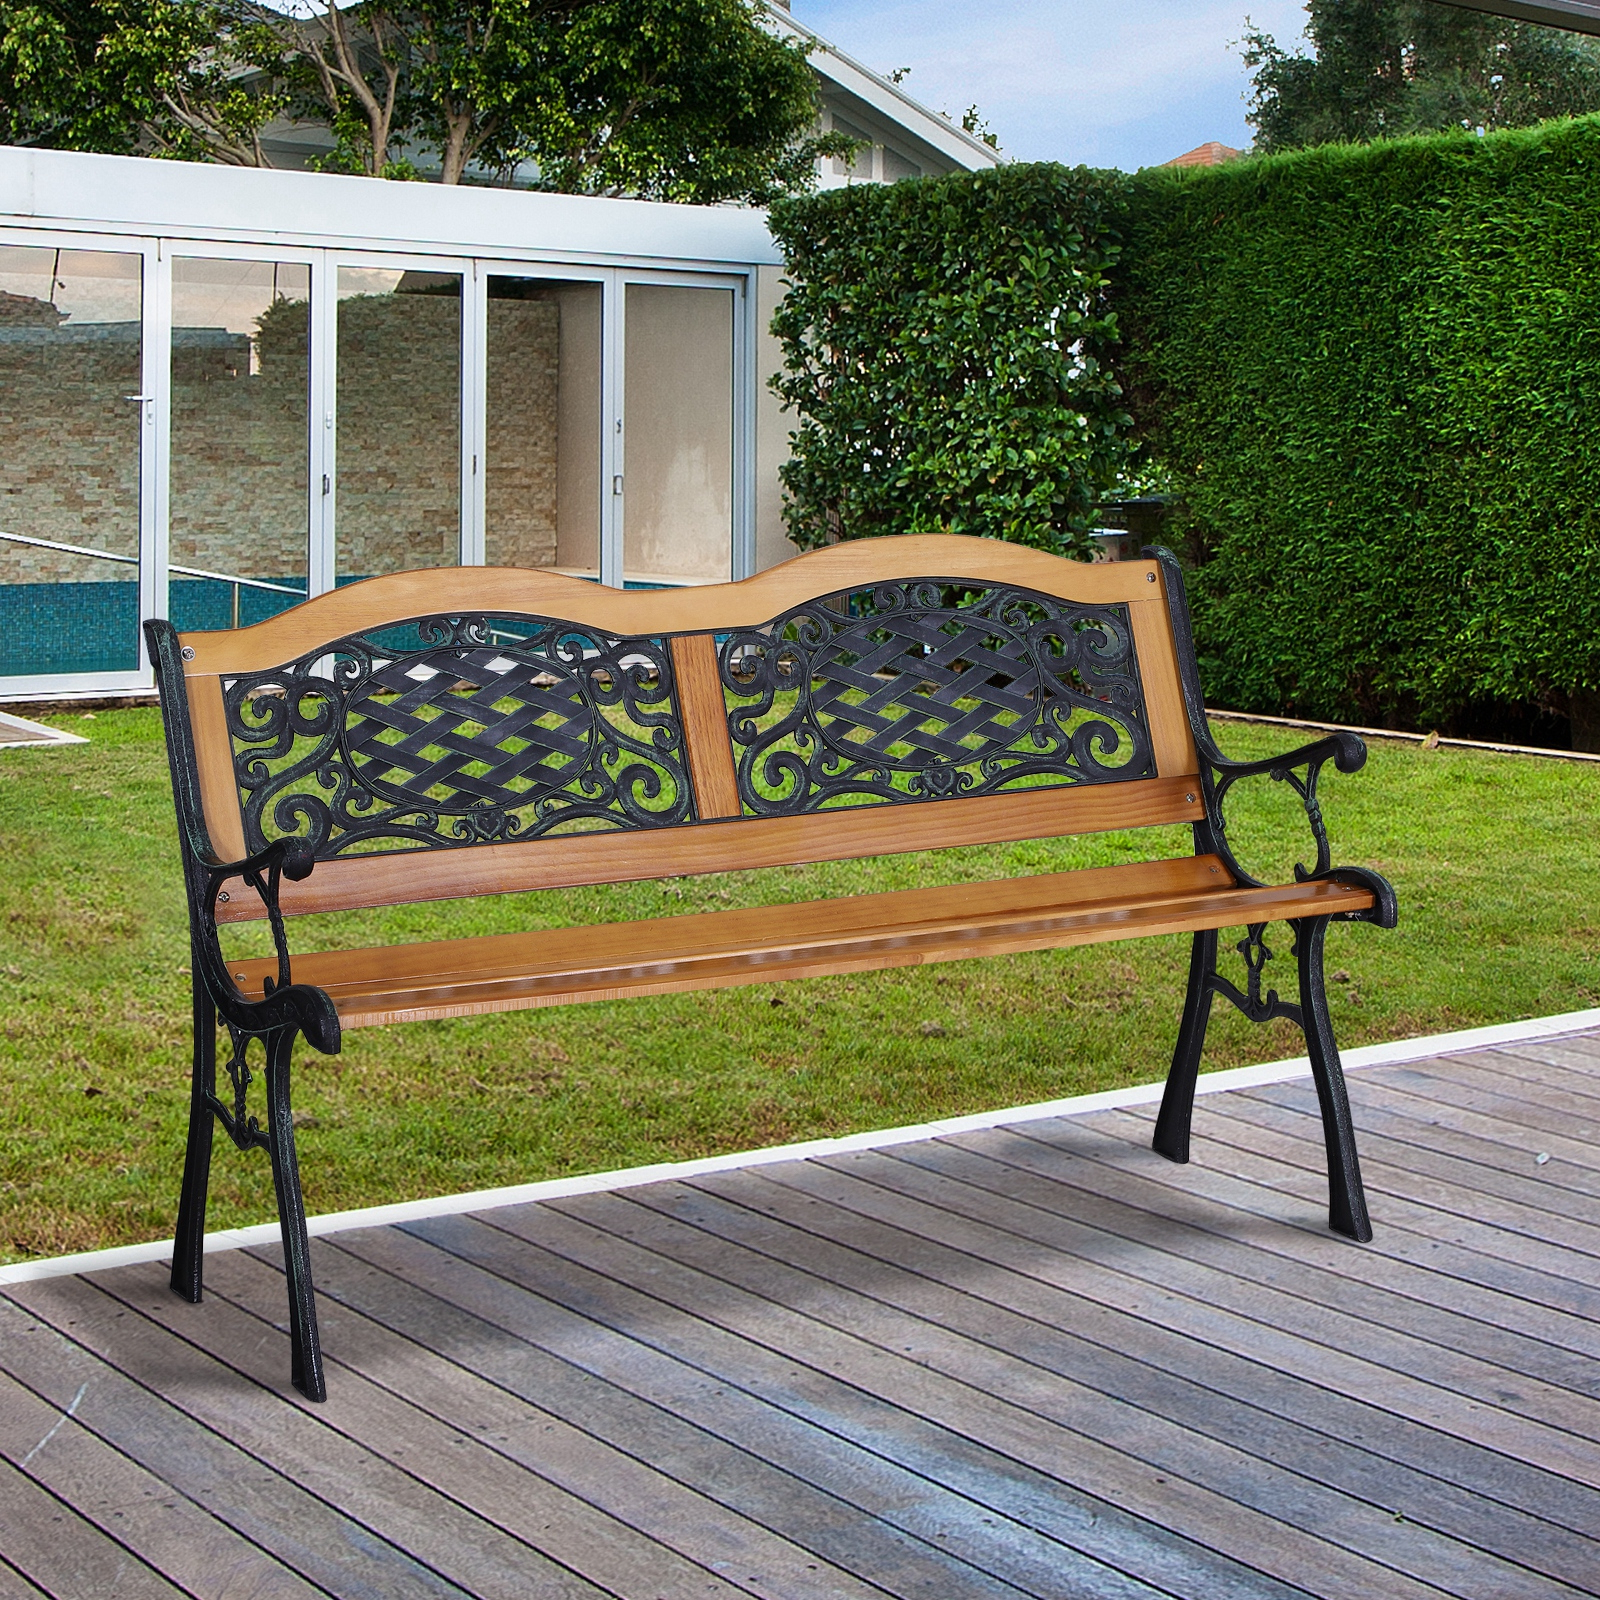 Ogród I Taras Cast Iron & Hardwood Classic Outdoor Garden Intended For Well Liked Madeline Vintage Bird Cast Iron Garden Benches (View 27 of 30)